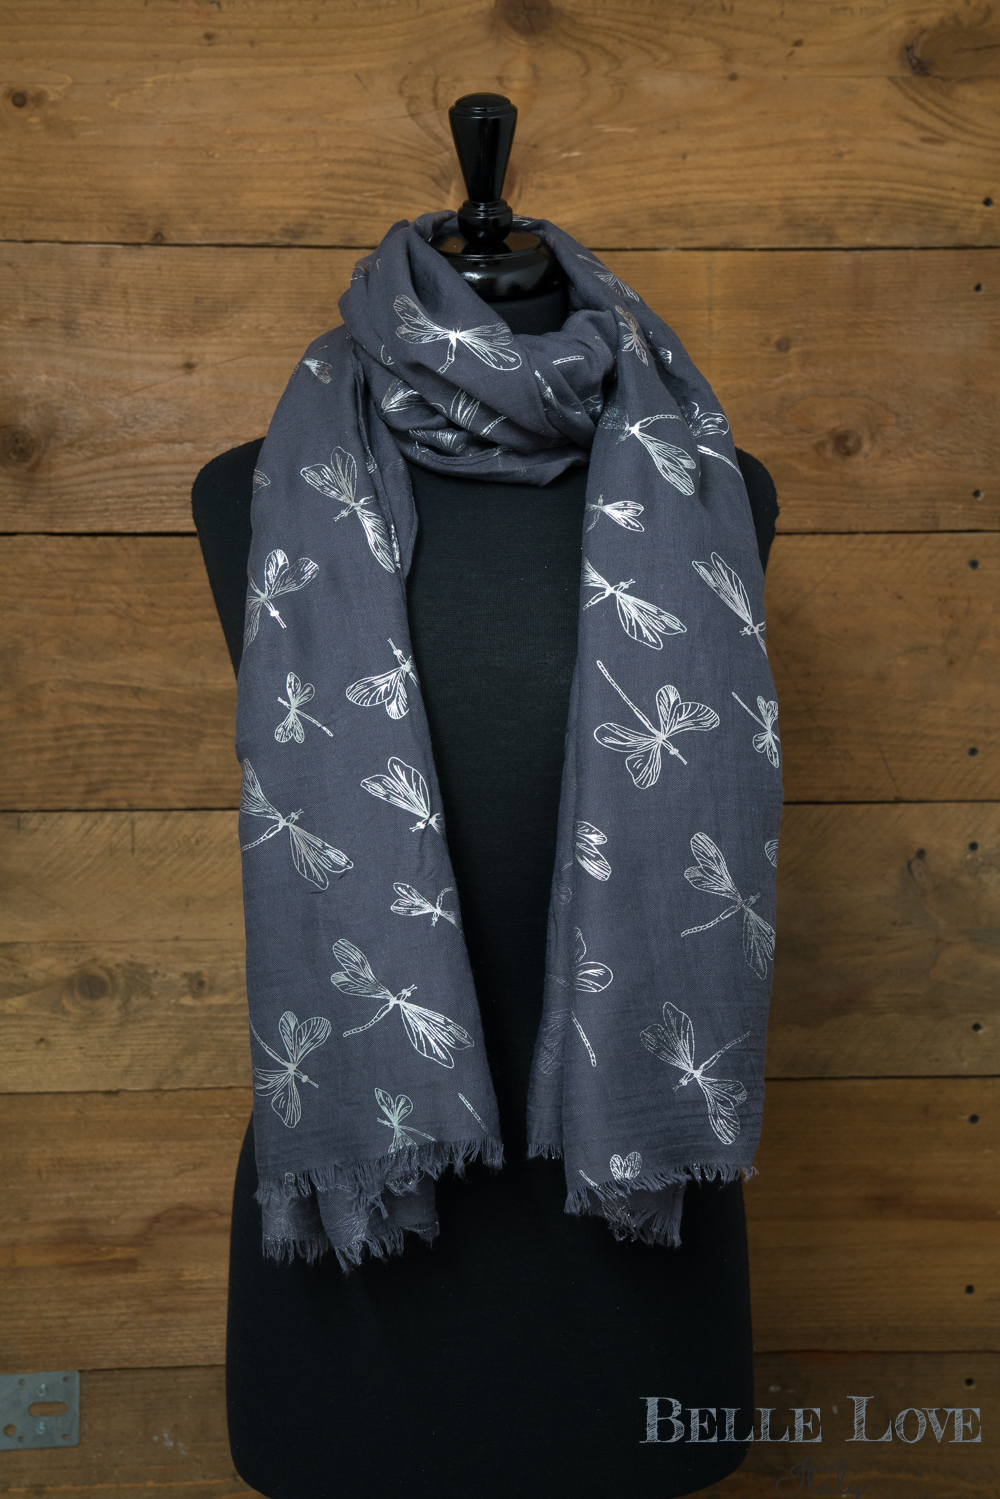 Belle Love Italy Glitter Dragonflies Scarf